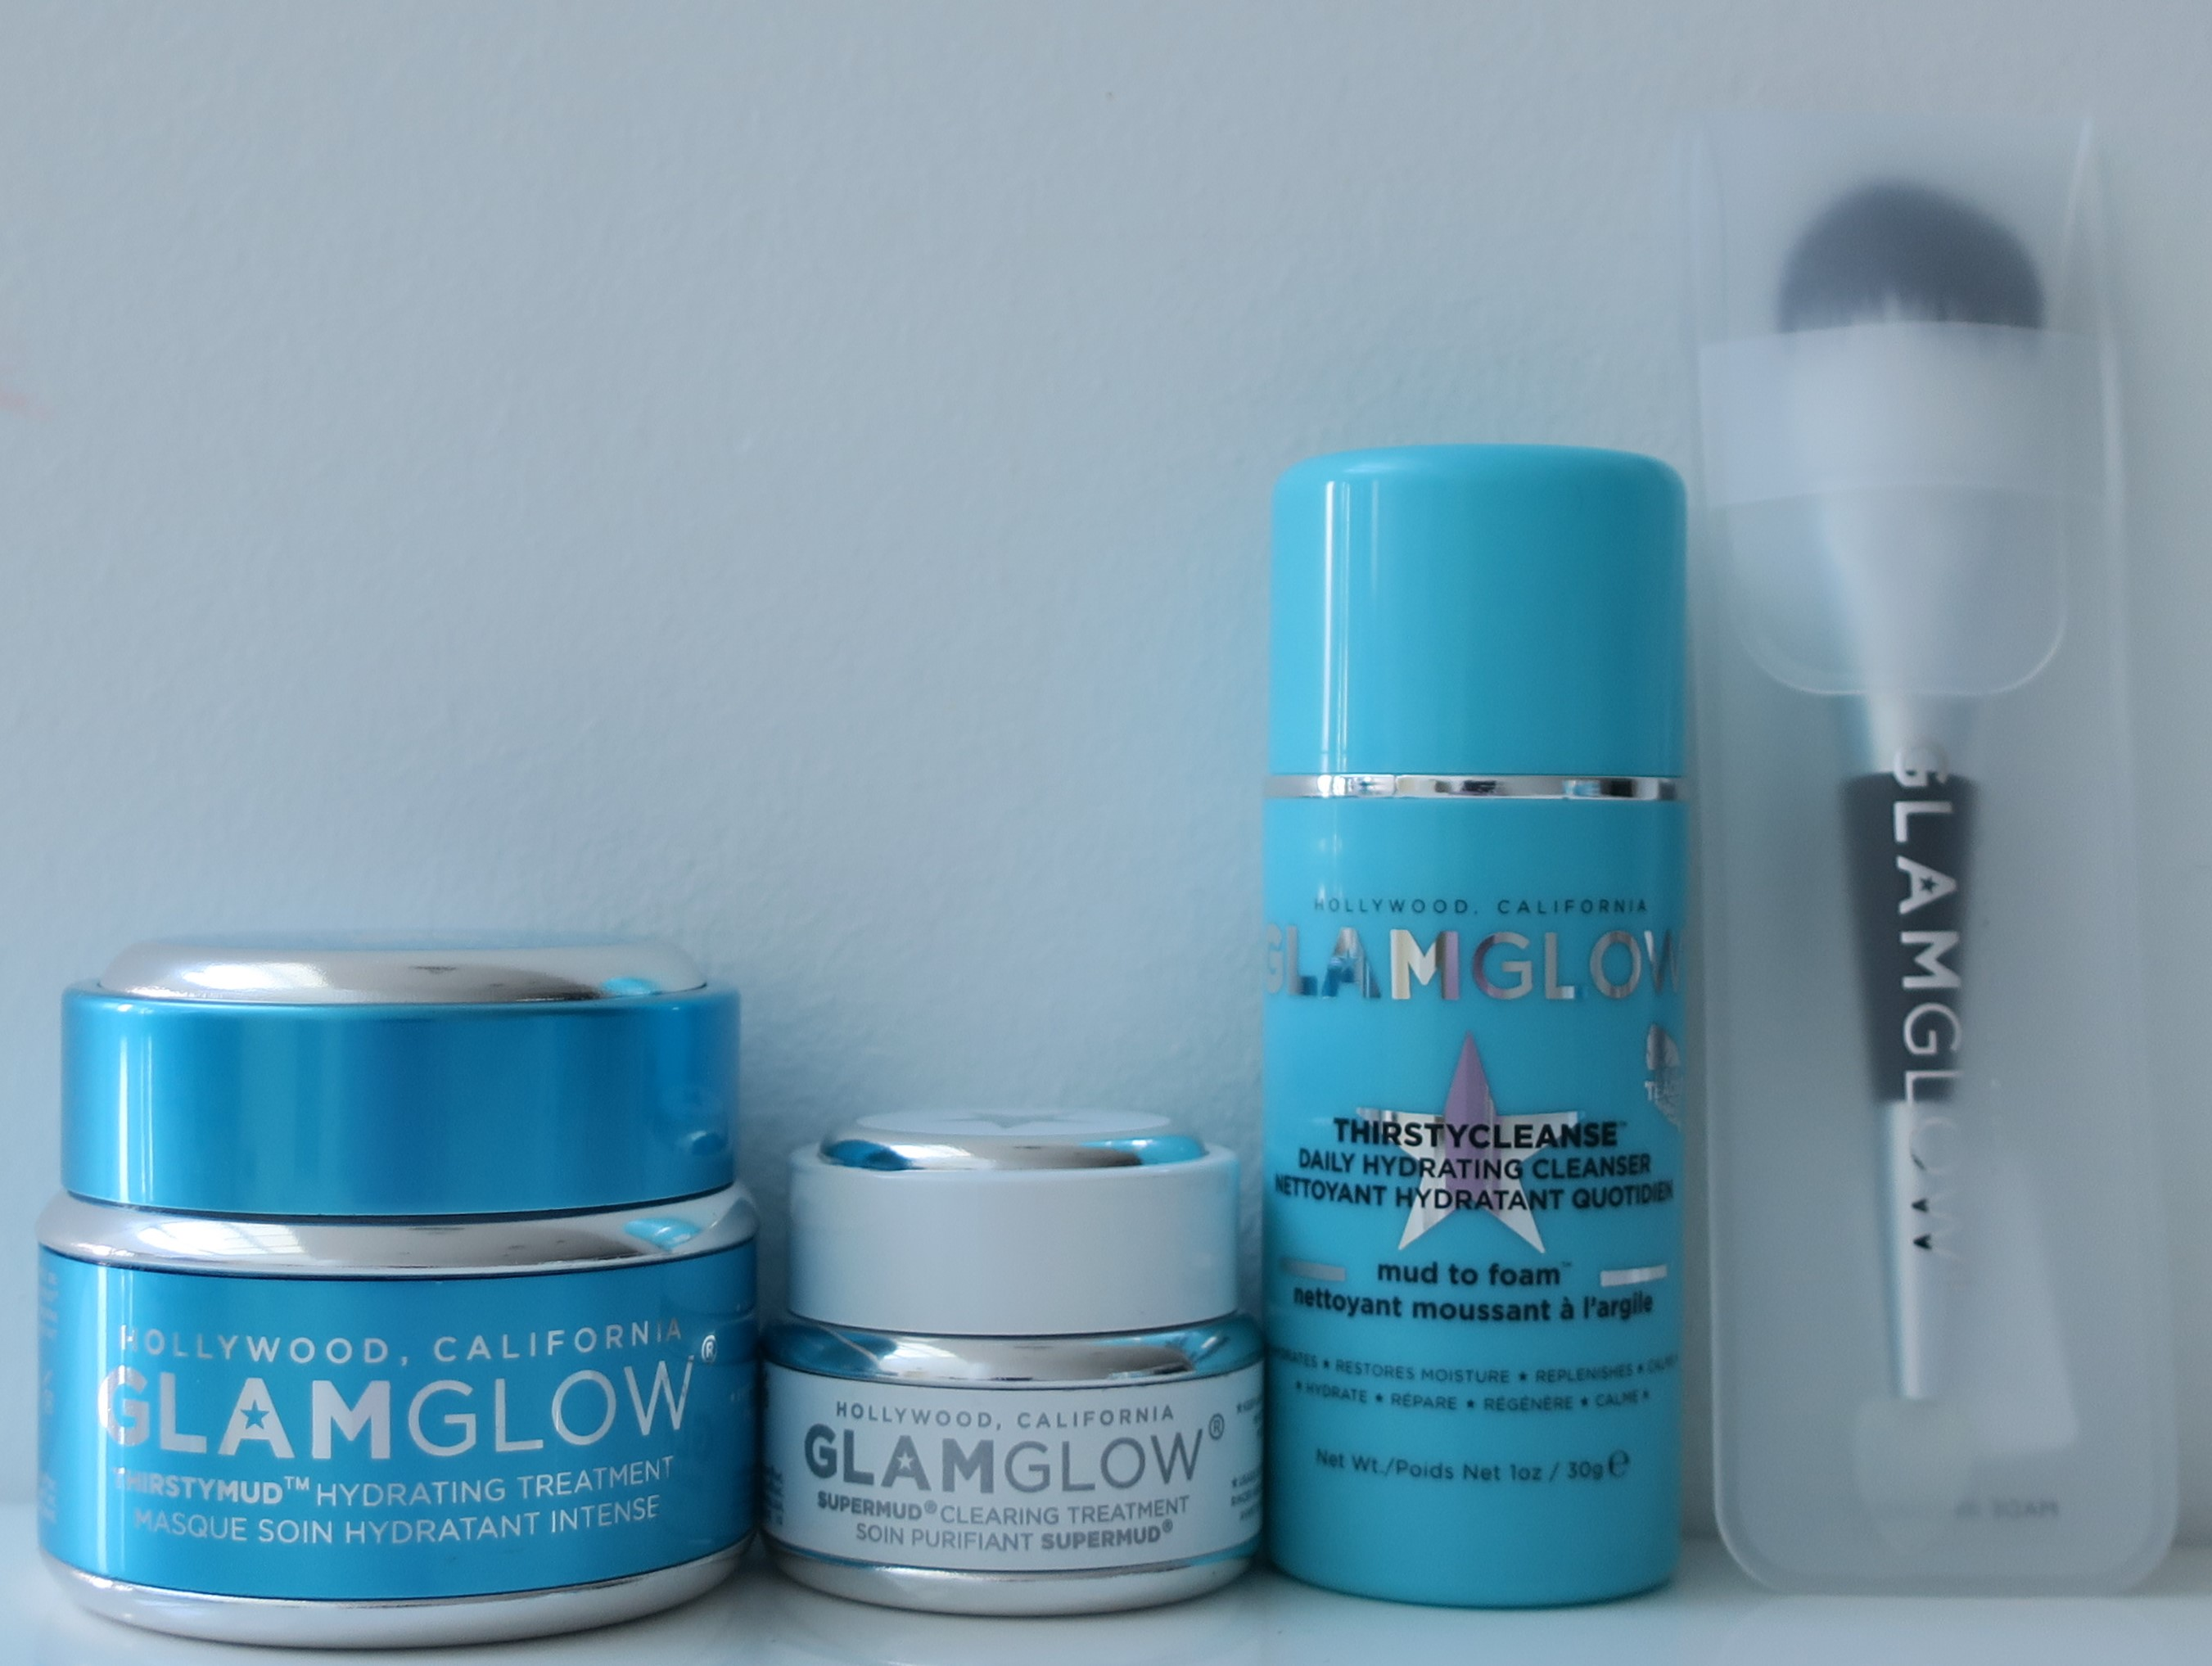 Glamglow Gift Sexy Dazzling Hydration Holiday Set Lulu S Makeup Travel Size Contains